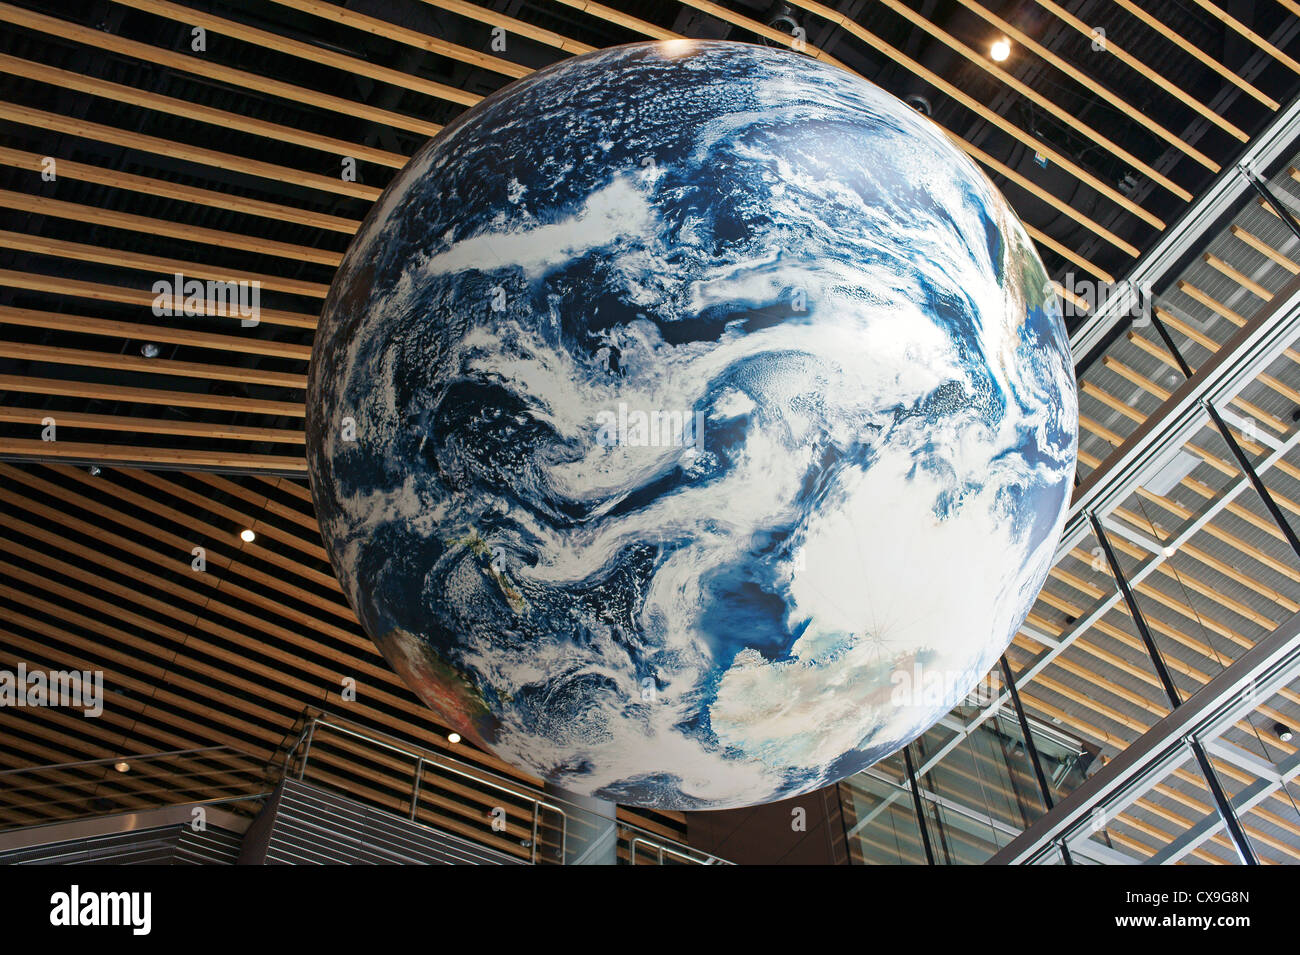 Giant Earth globe in the atrium of the Vancouver Convention Centre, Vancouver,  Canada - Stock Image